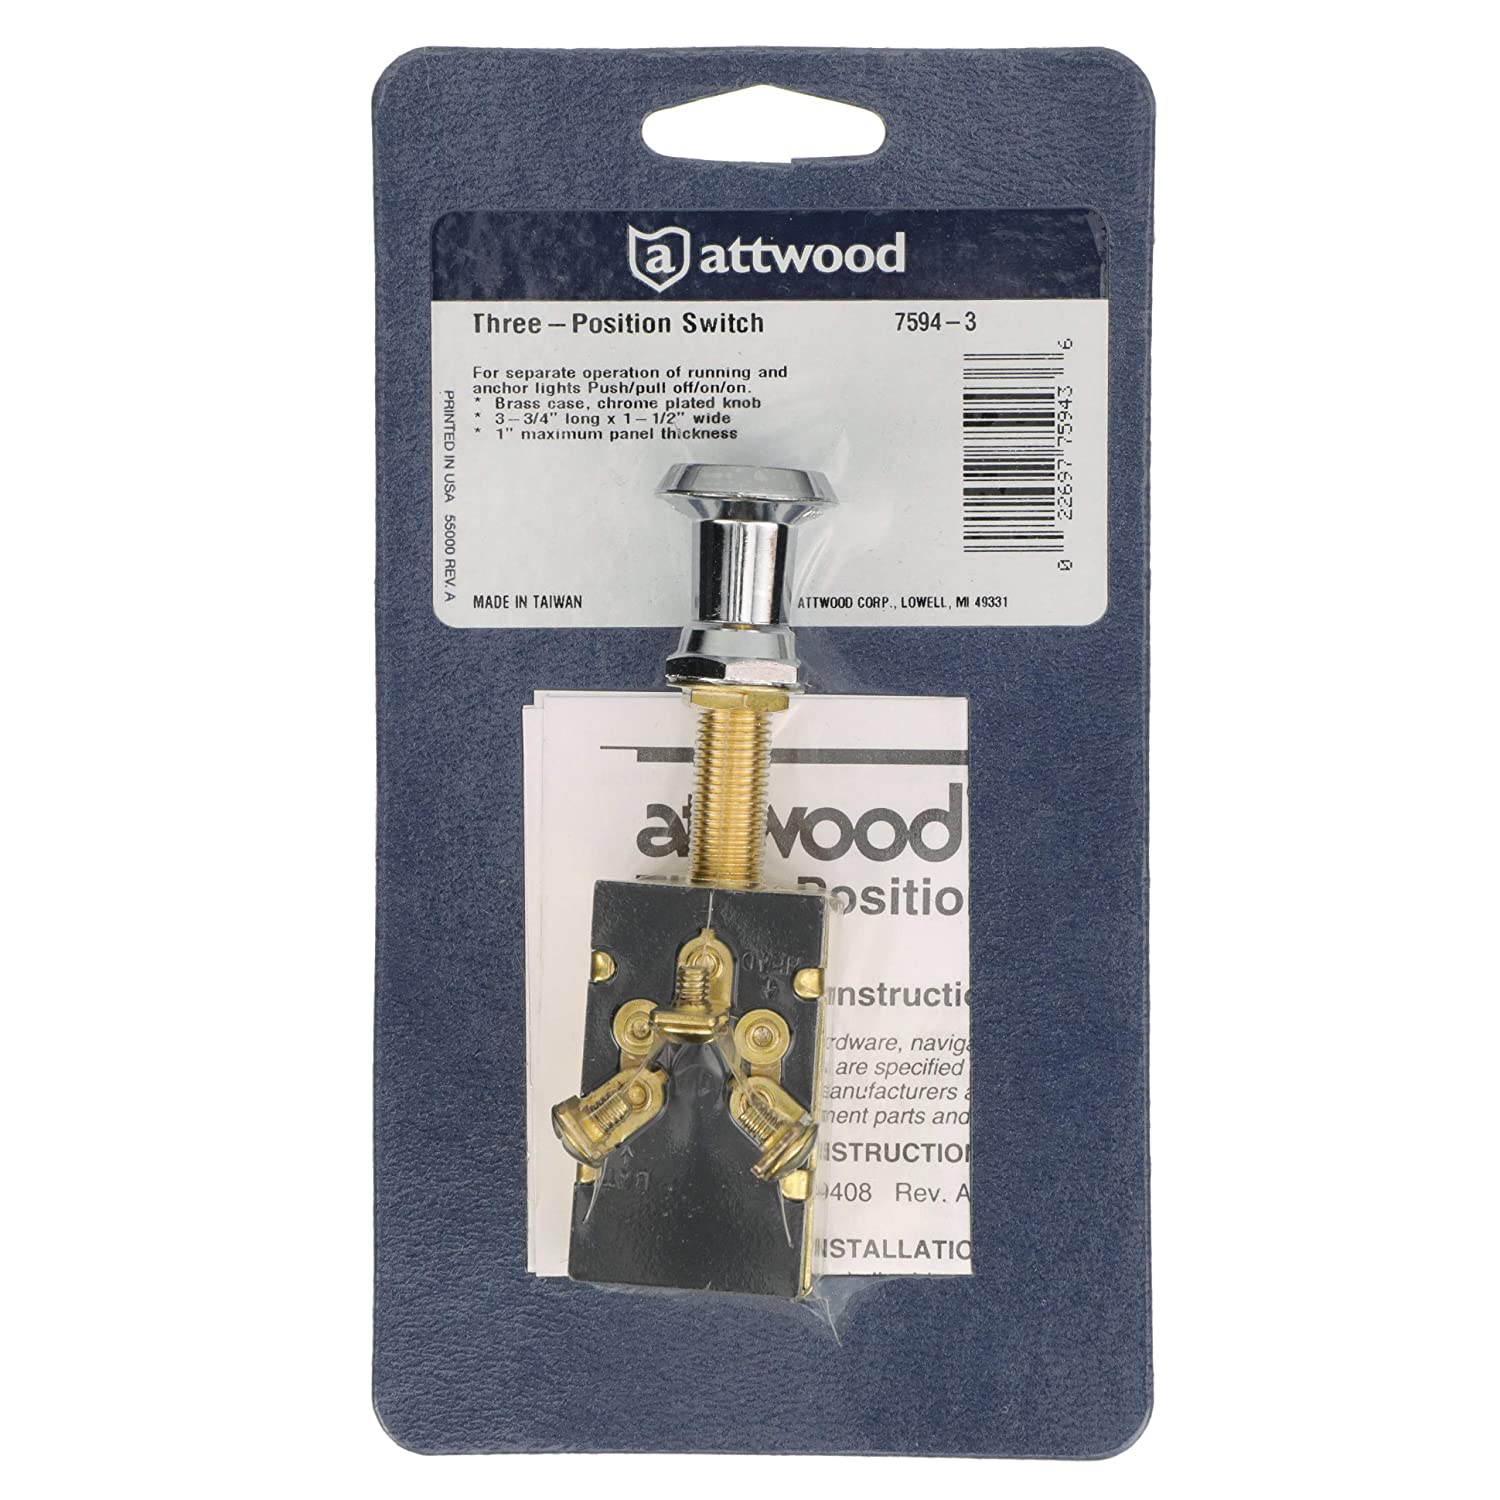 ATTWOOD MARINE 7594-3 ATTWOOD PUSH//PULL SWITCH THREE POSITION OFF//ON//ON